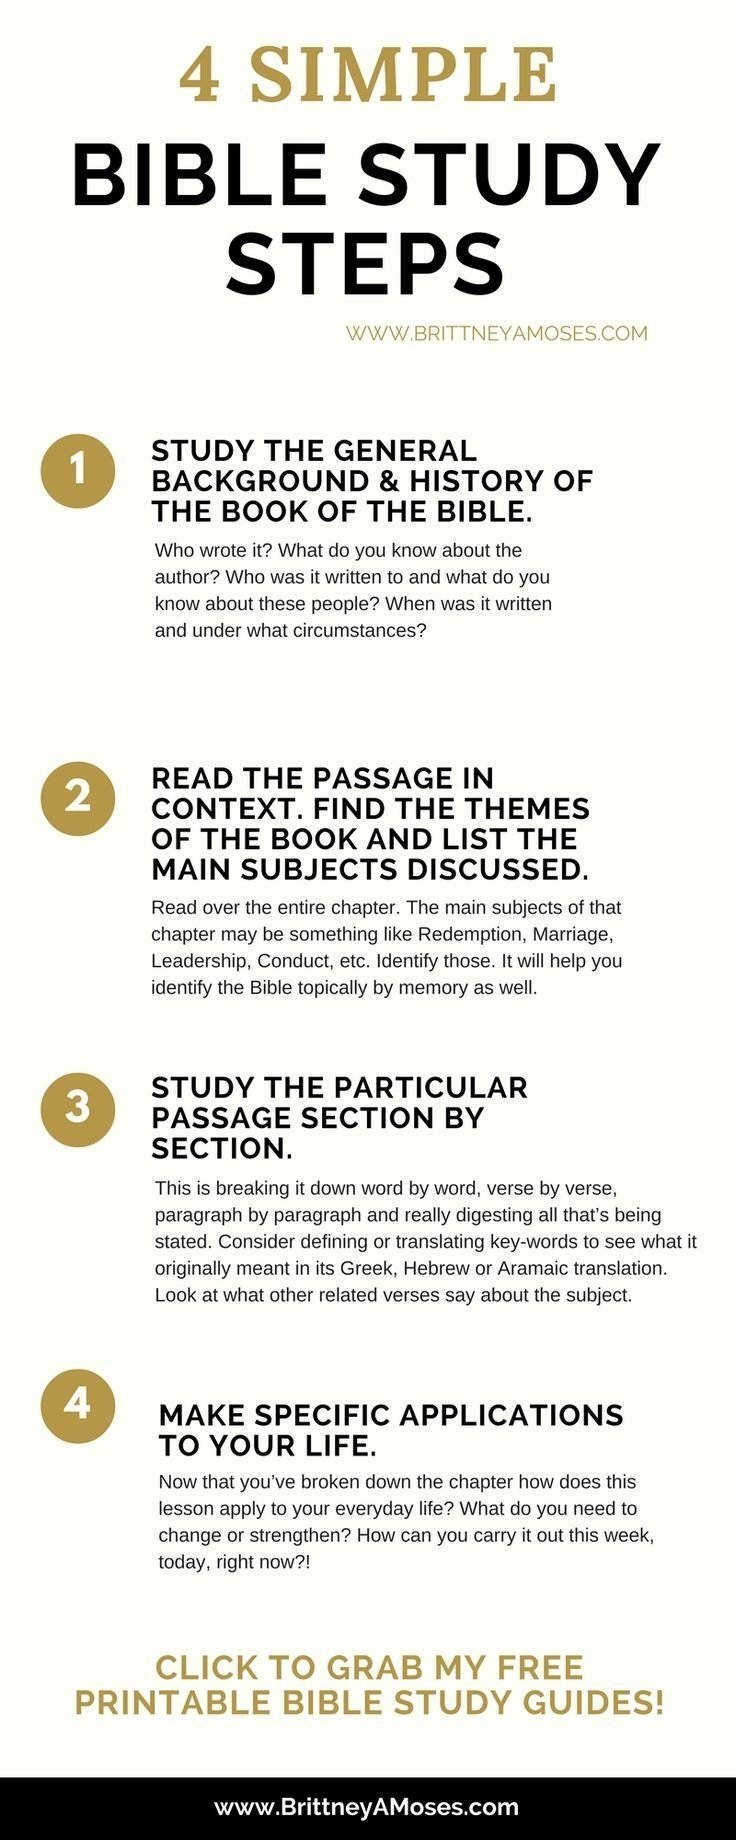 10 Awesome Small Group Bible Study Ideas 26 best bible study images on pinterest bible studies christian 2020